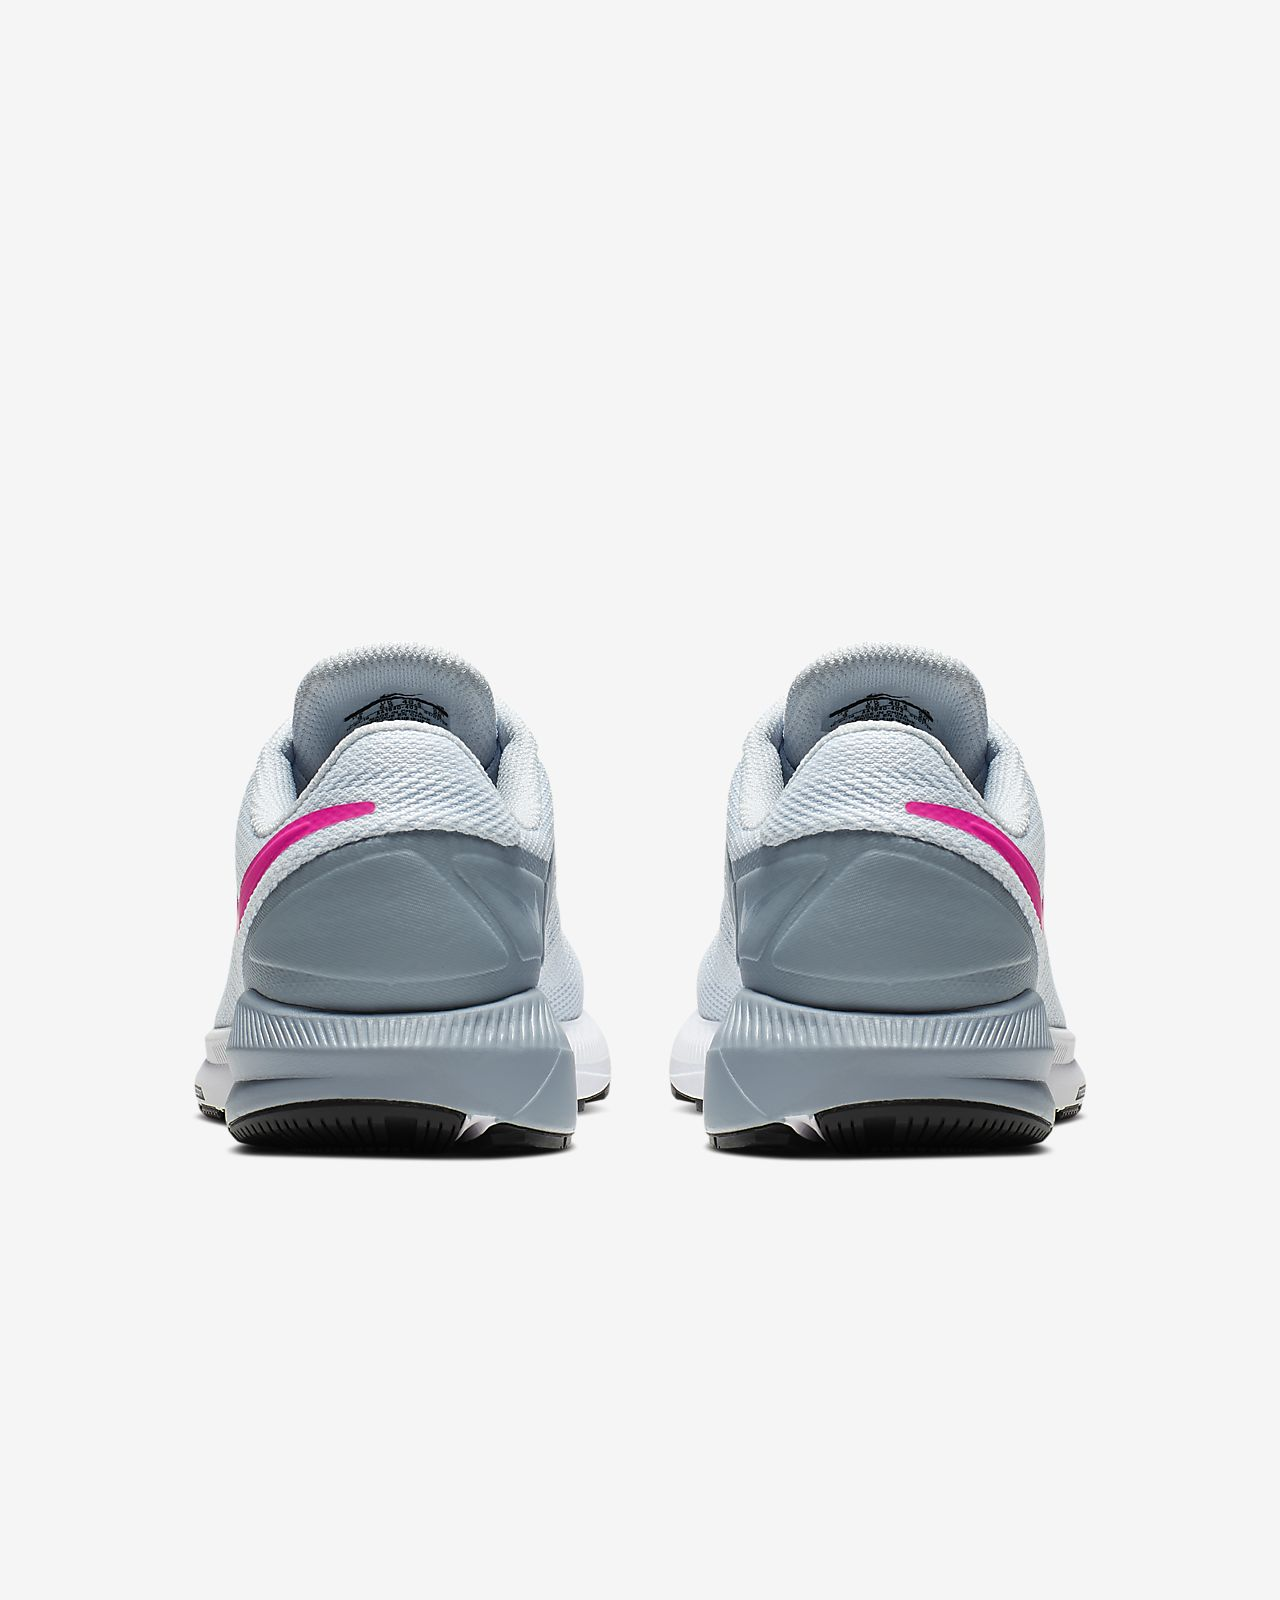 6e0aabee6b3bb Nike Air Zoom Structure 22 Women s Running Shoe. Nike.com